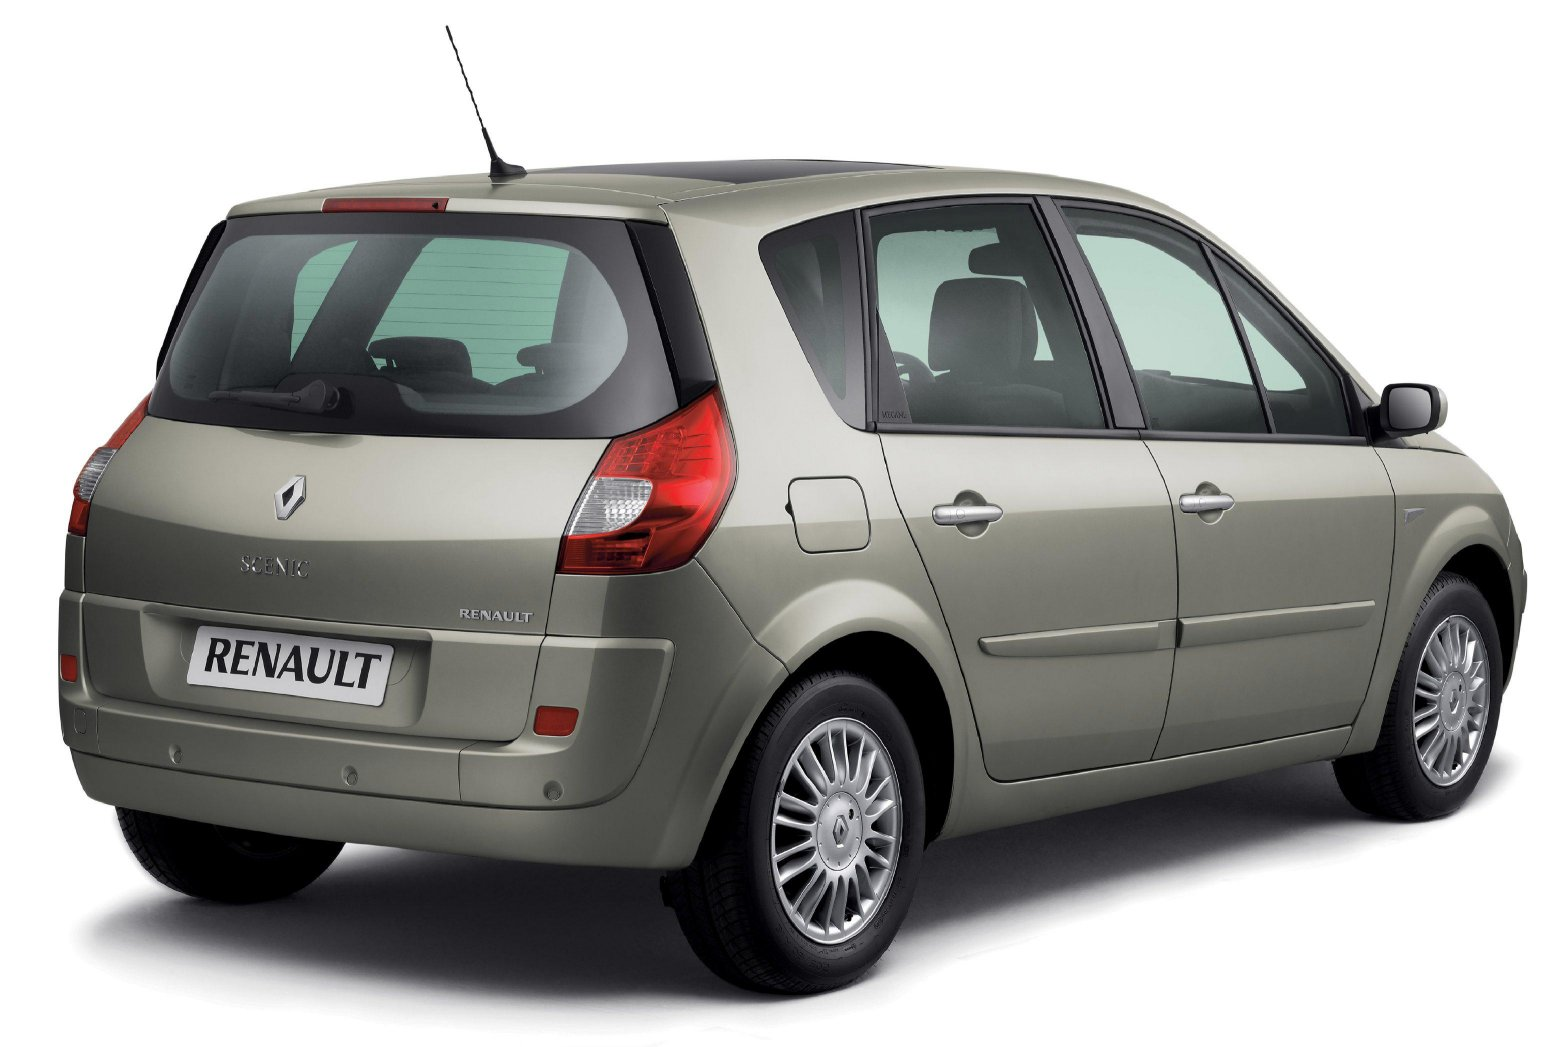 Renault Scenic Car Specifications Free Download Image Of